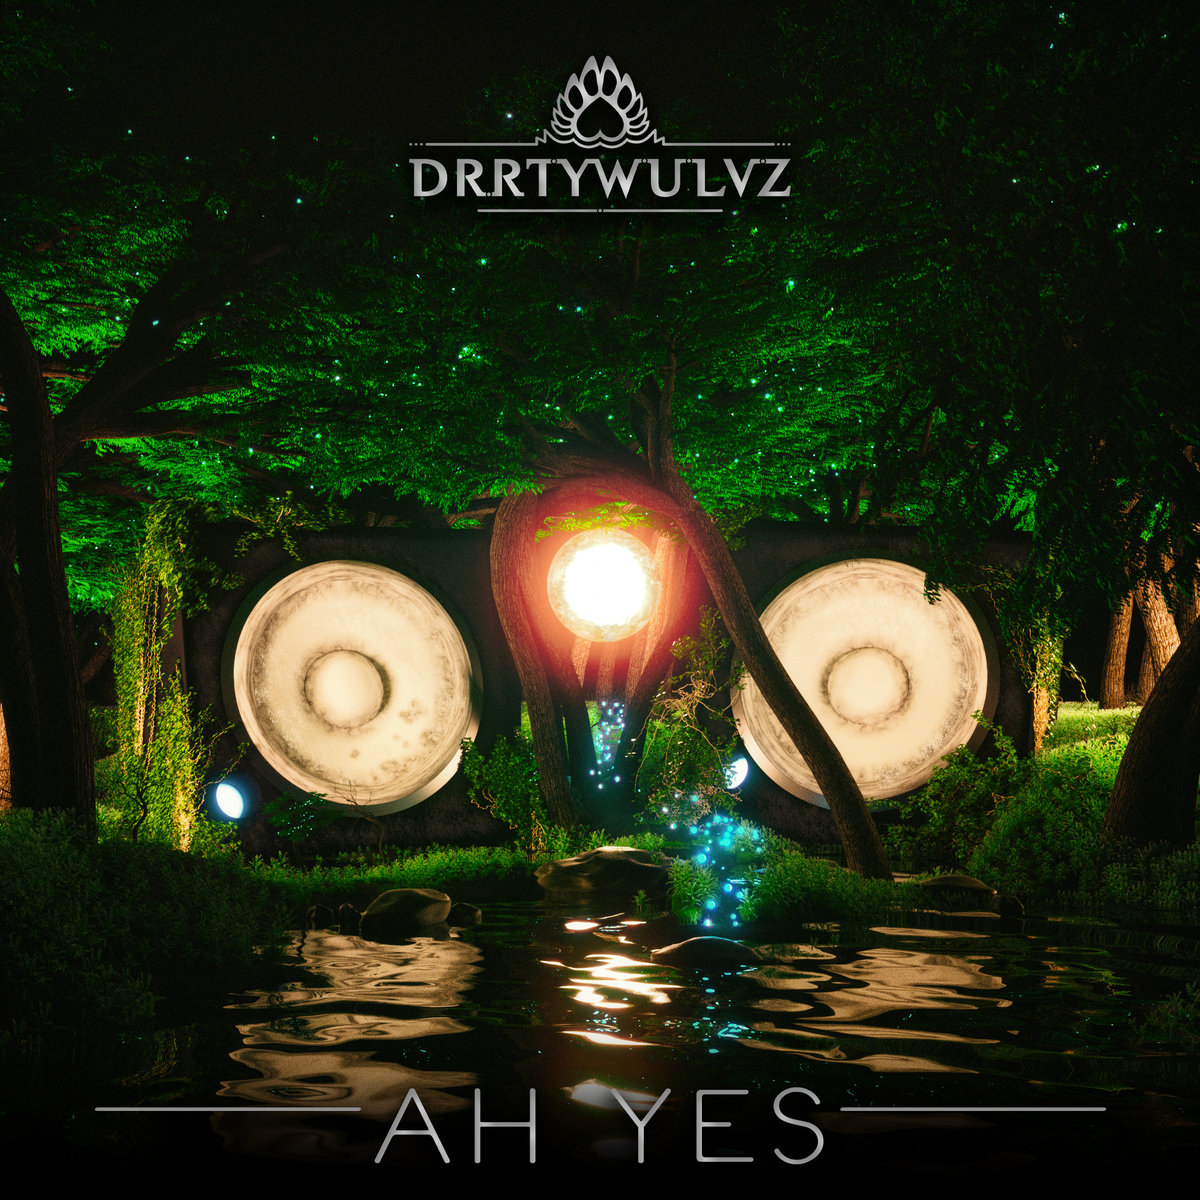 DRRTYWULVZ - Tapping In @ 'Ah Yes' album (bass, drrtywulvz)